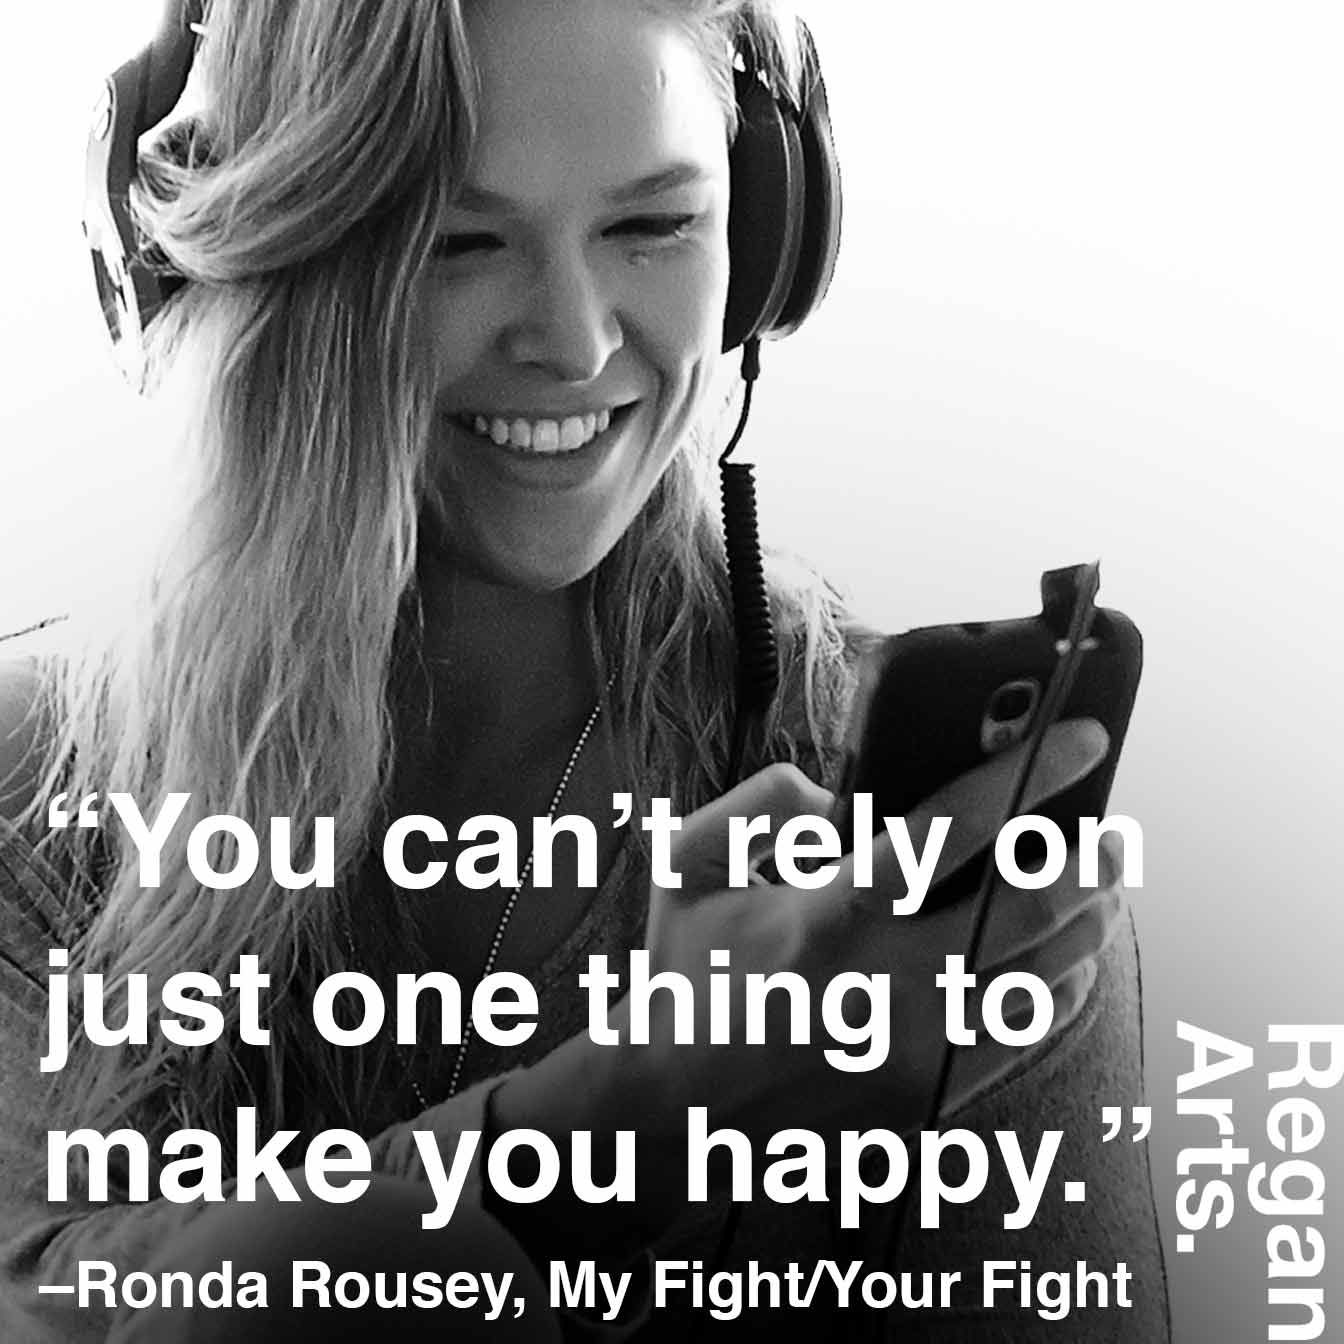 So true  The 2 things that make me happy are bjj and food  | Ronda